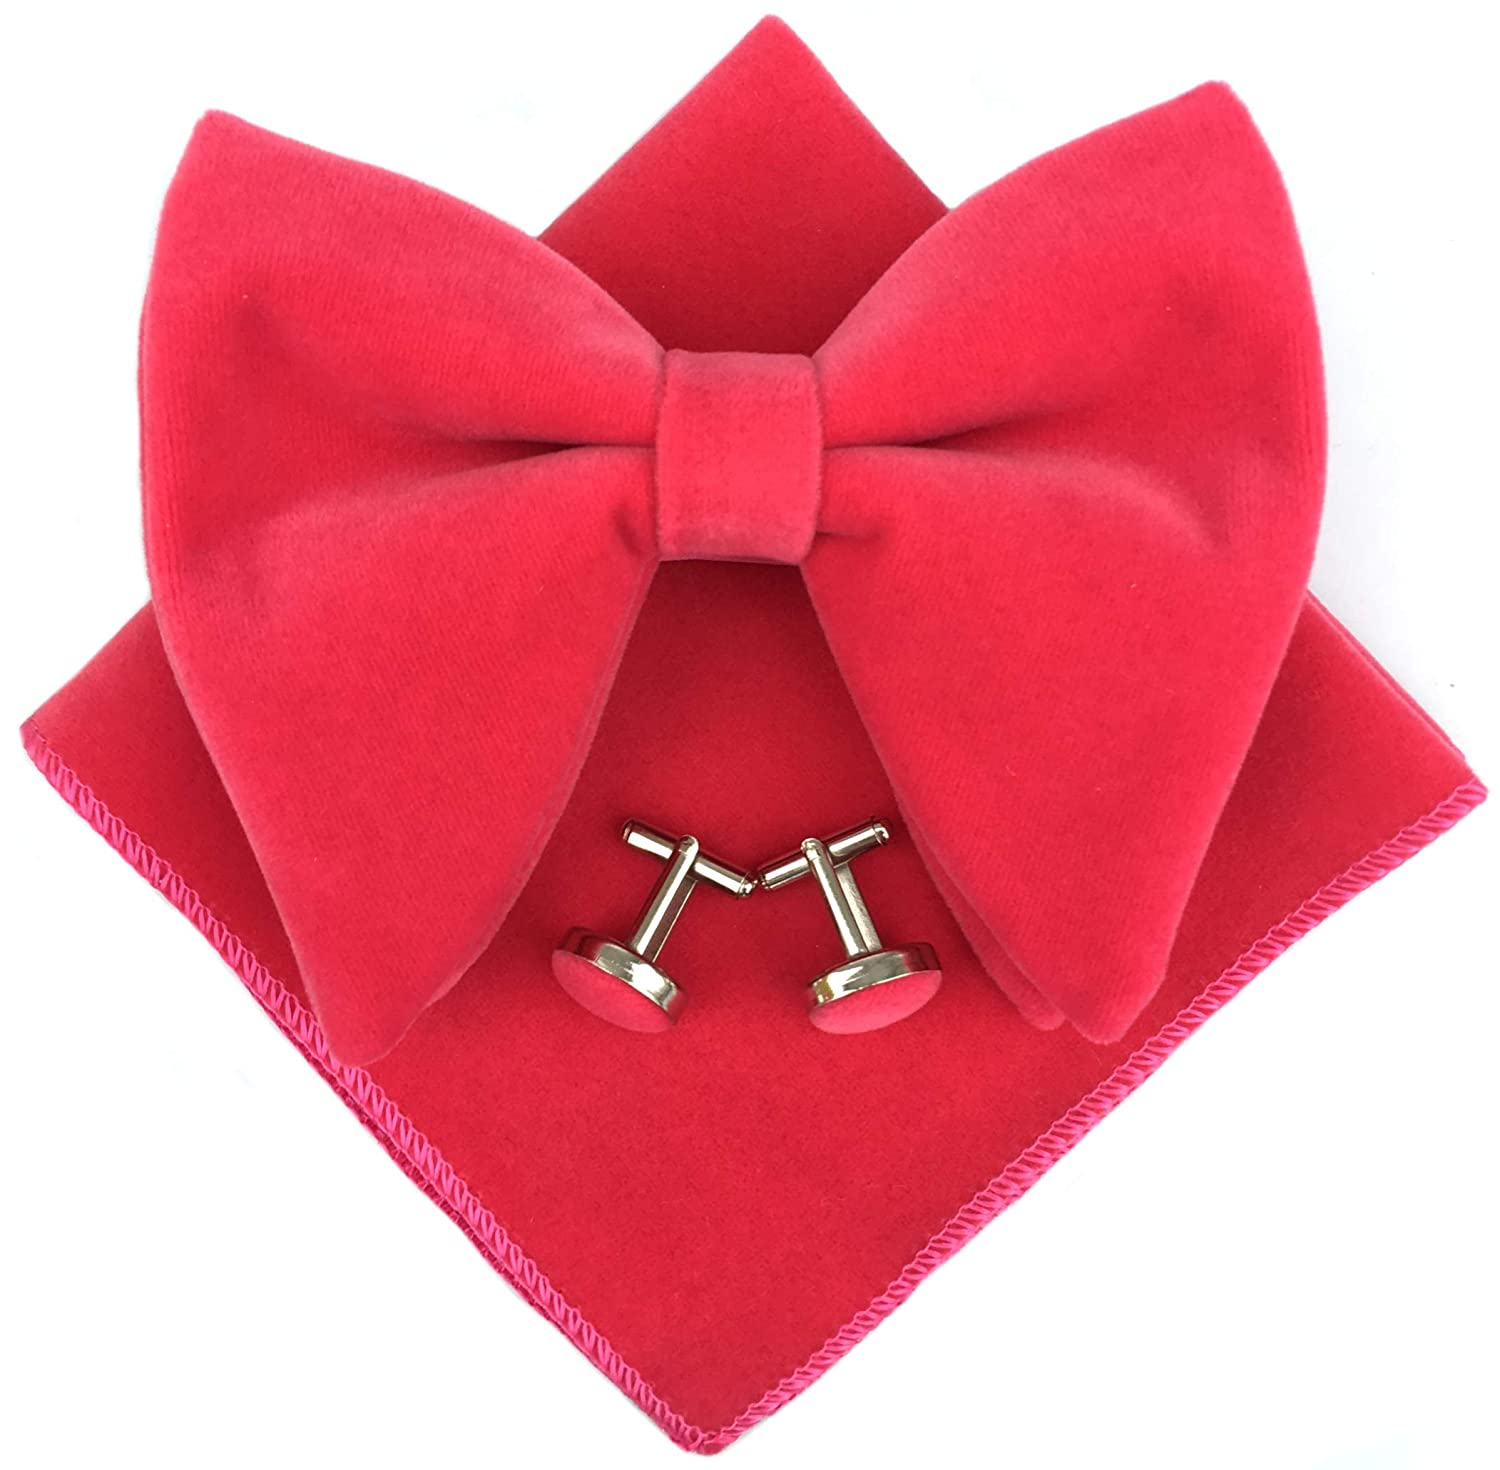 Mens Pre-Tied Oversized Bow Tie Tuxedo Velvet Bowtie Cufflinks Hankie Combo Sets